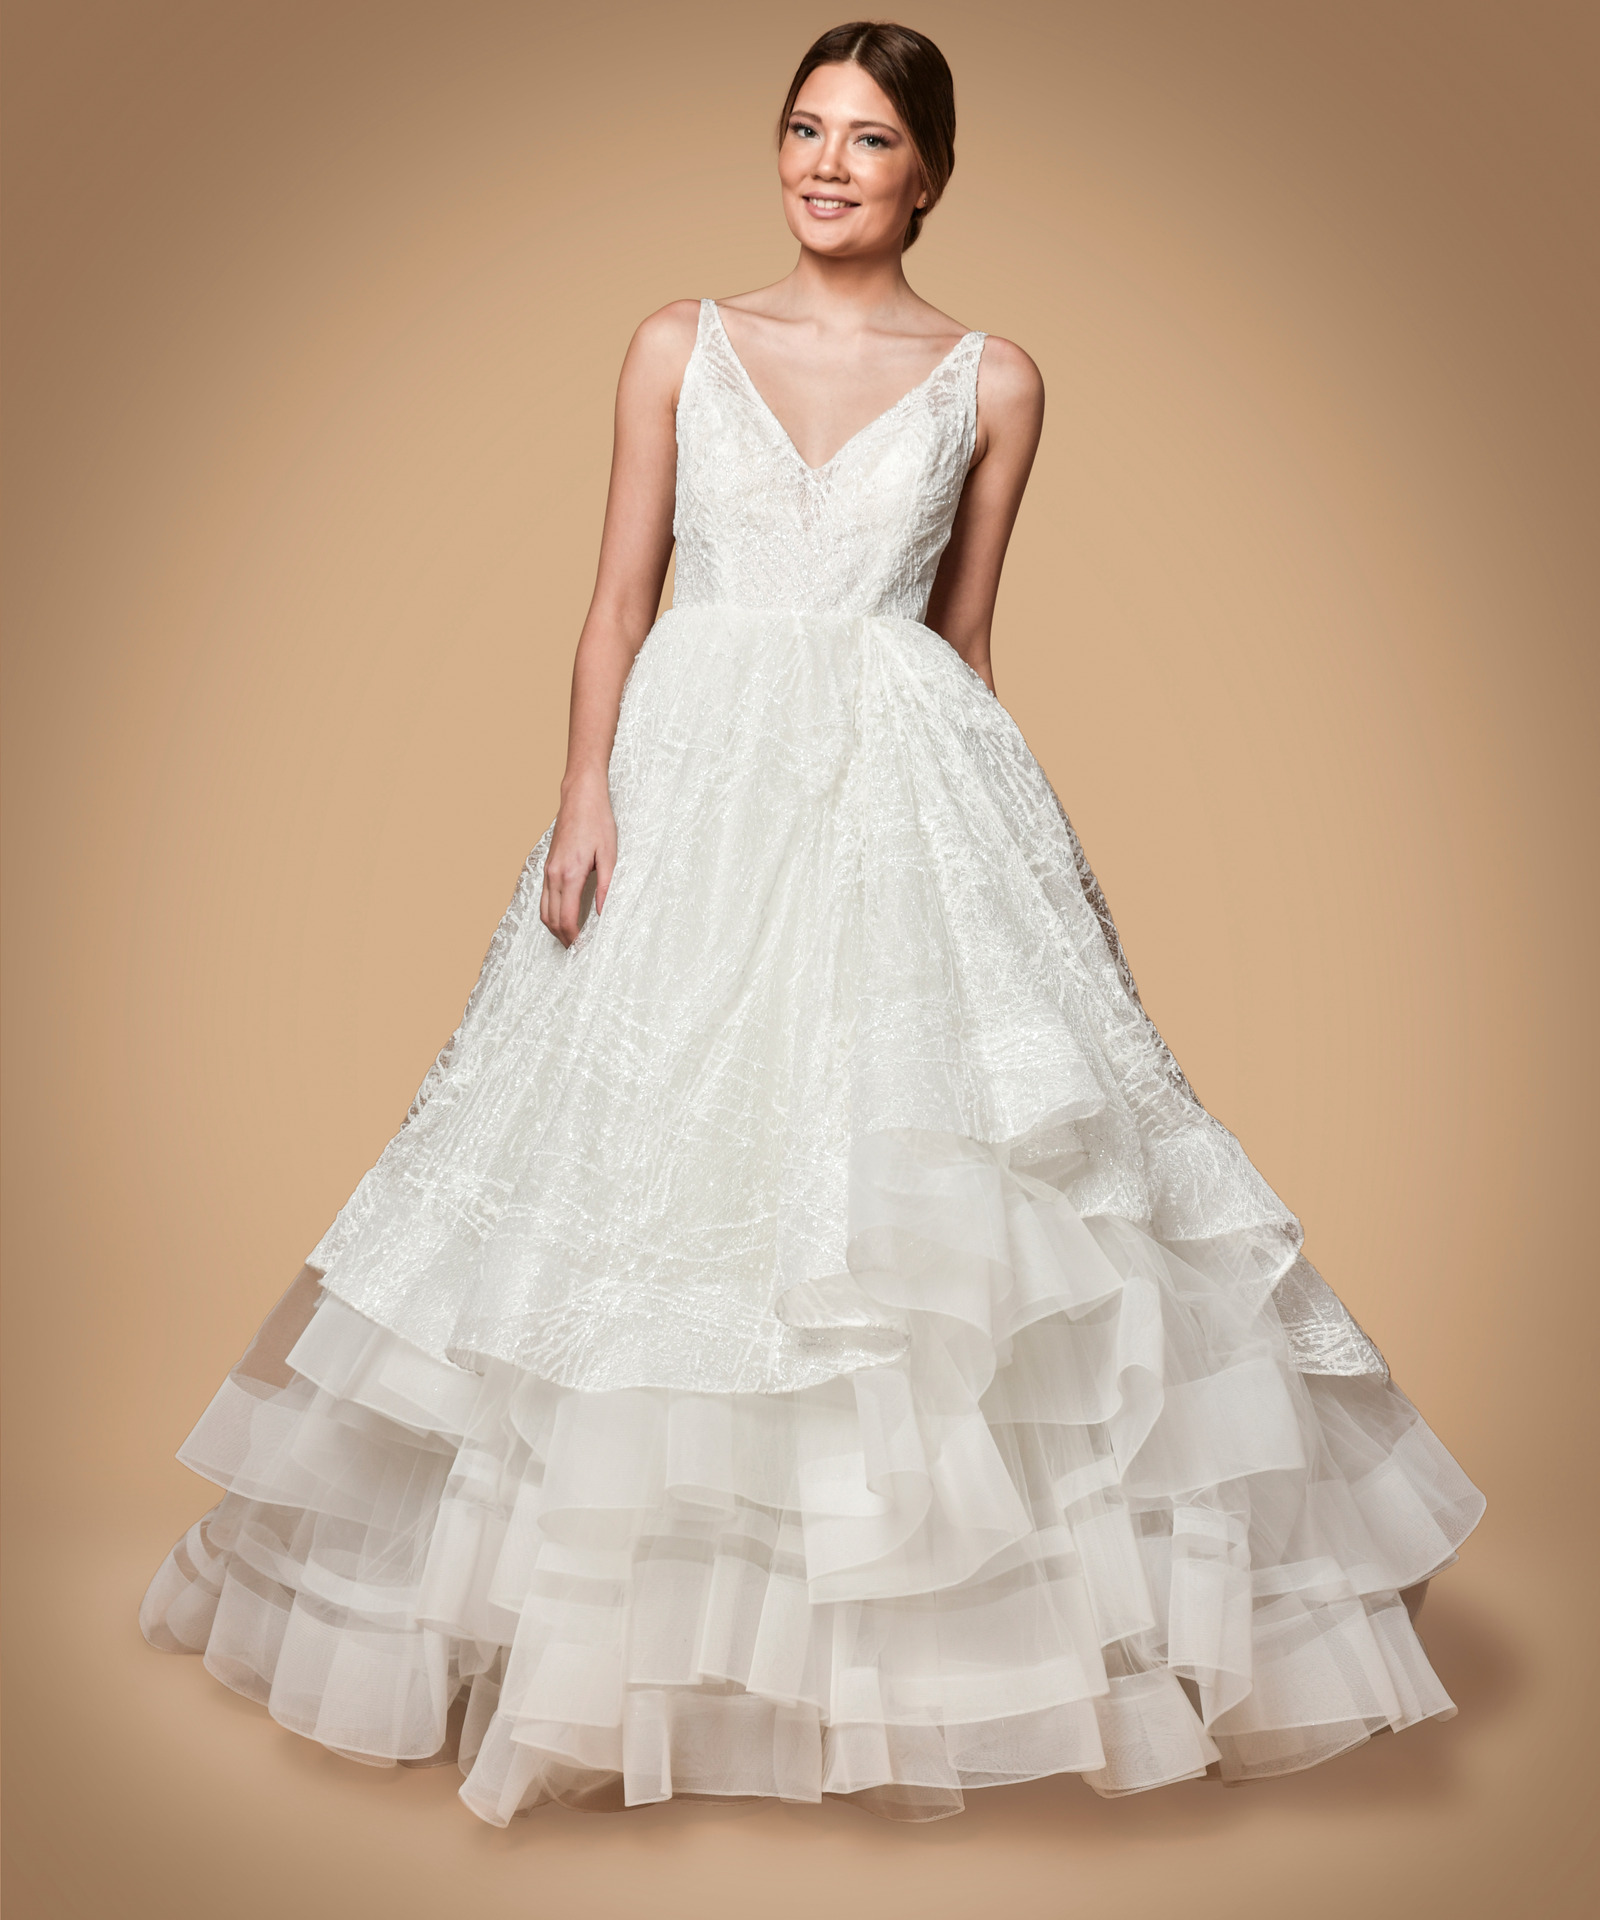 Wedding Gown Rental Prices: Dress 1